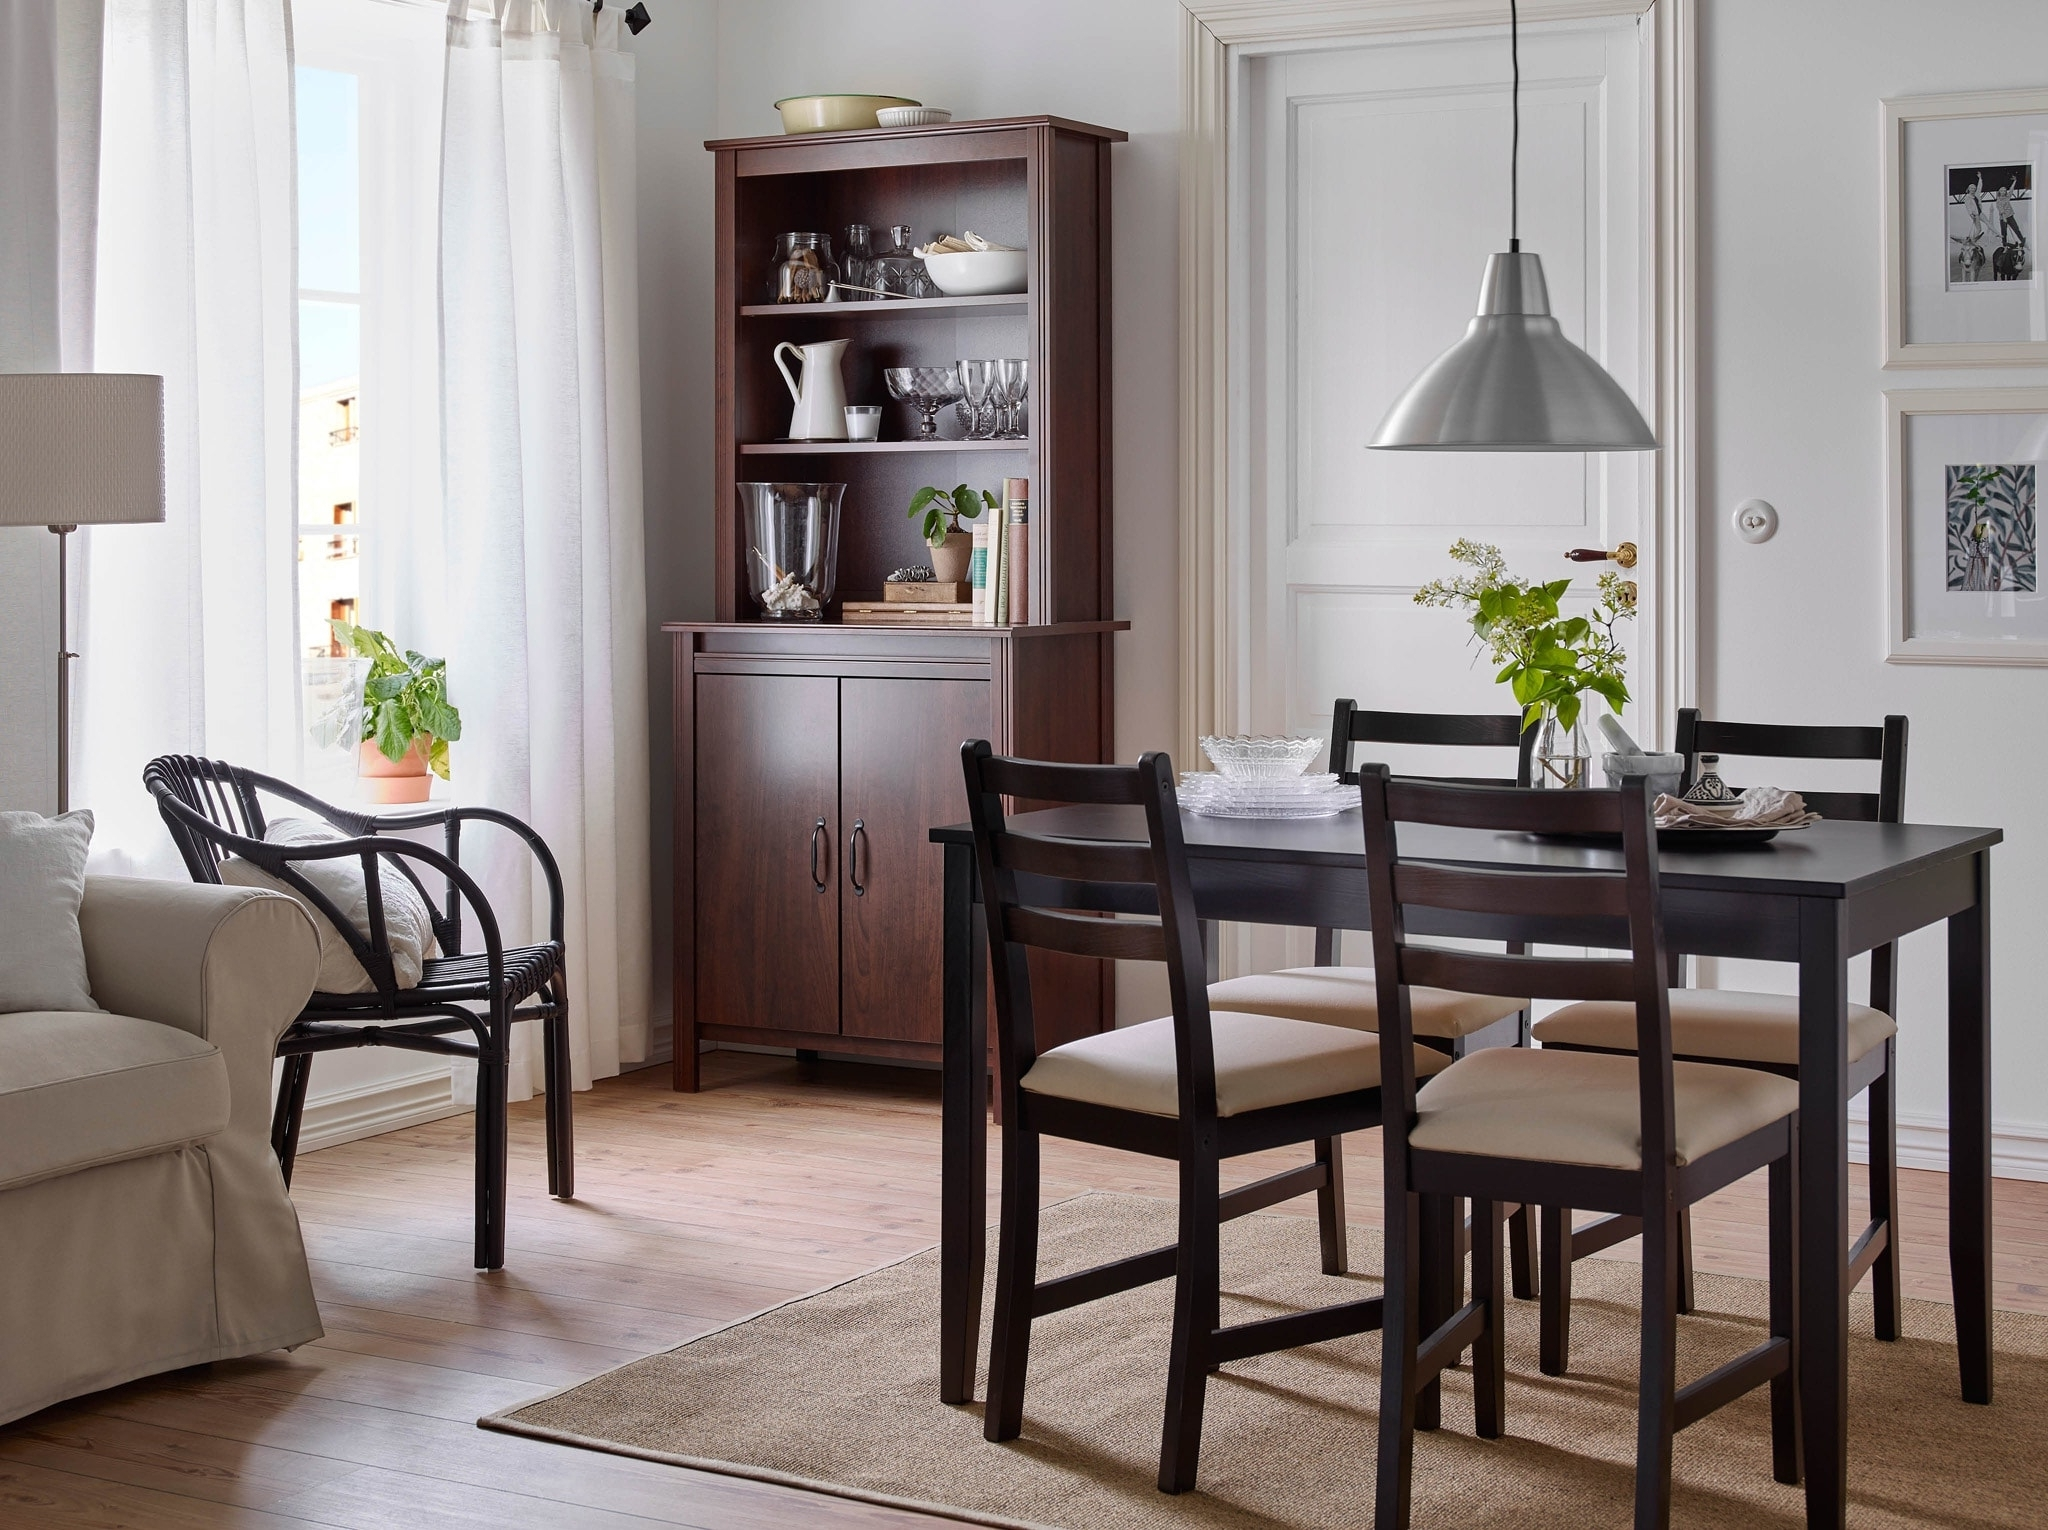 Favorite Dining Room Furniture & Ideas (View 15 of 25)